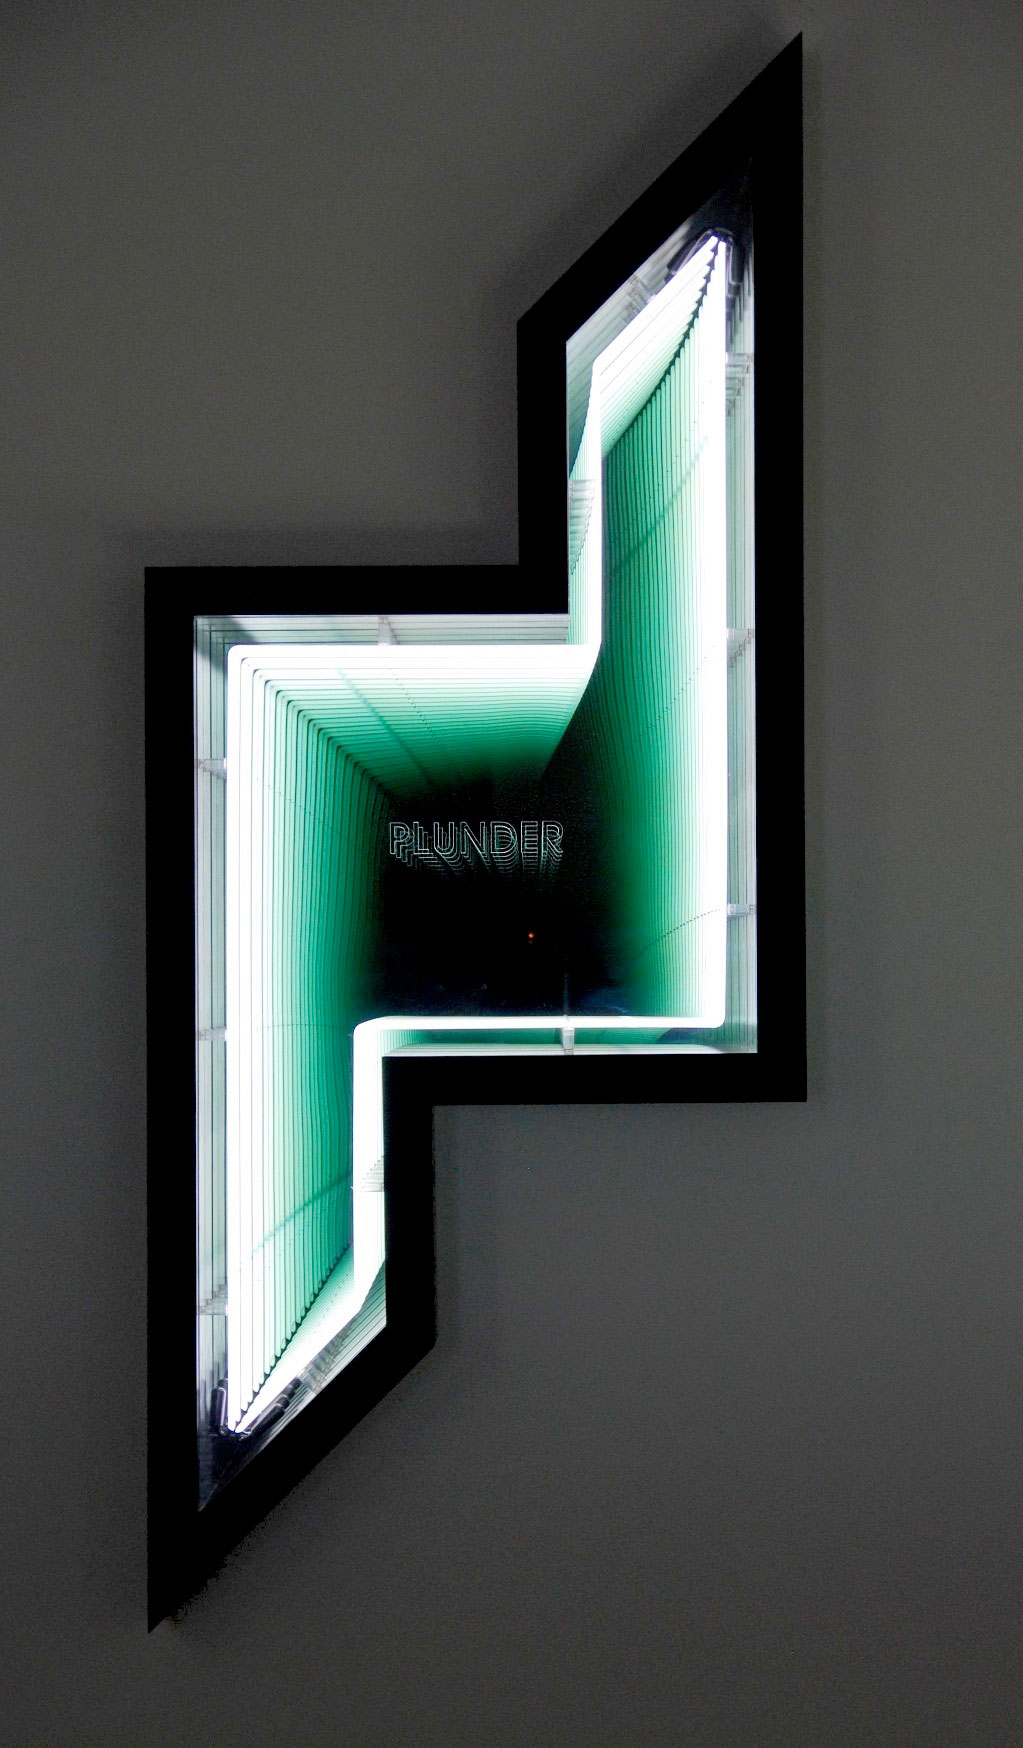 Ivan Navarro, Plunder (Dubai Towers - Doha), 2011. Neon , wood, paint , Plexiglas , mirror, two-way mirror and electricity, 249 x 103 x 18 cm. Photo courtesy Galerie Templon, Paris and Brussels.